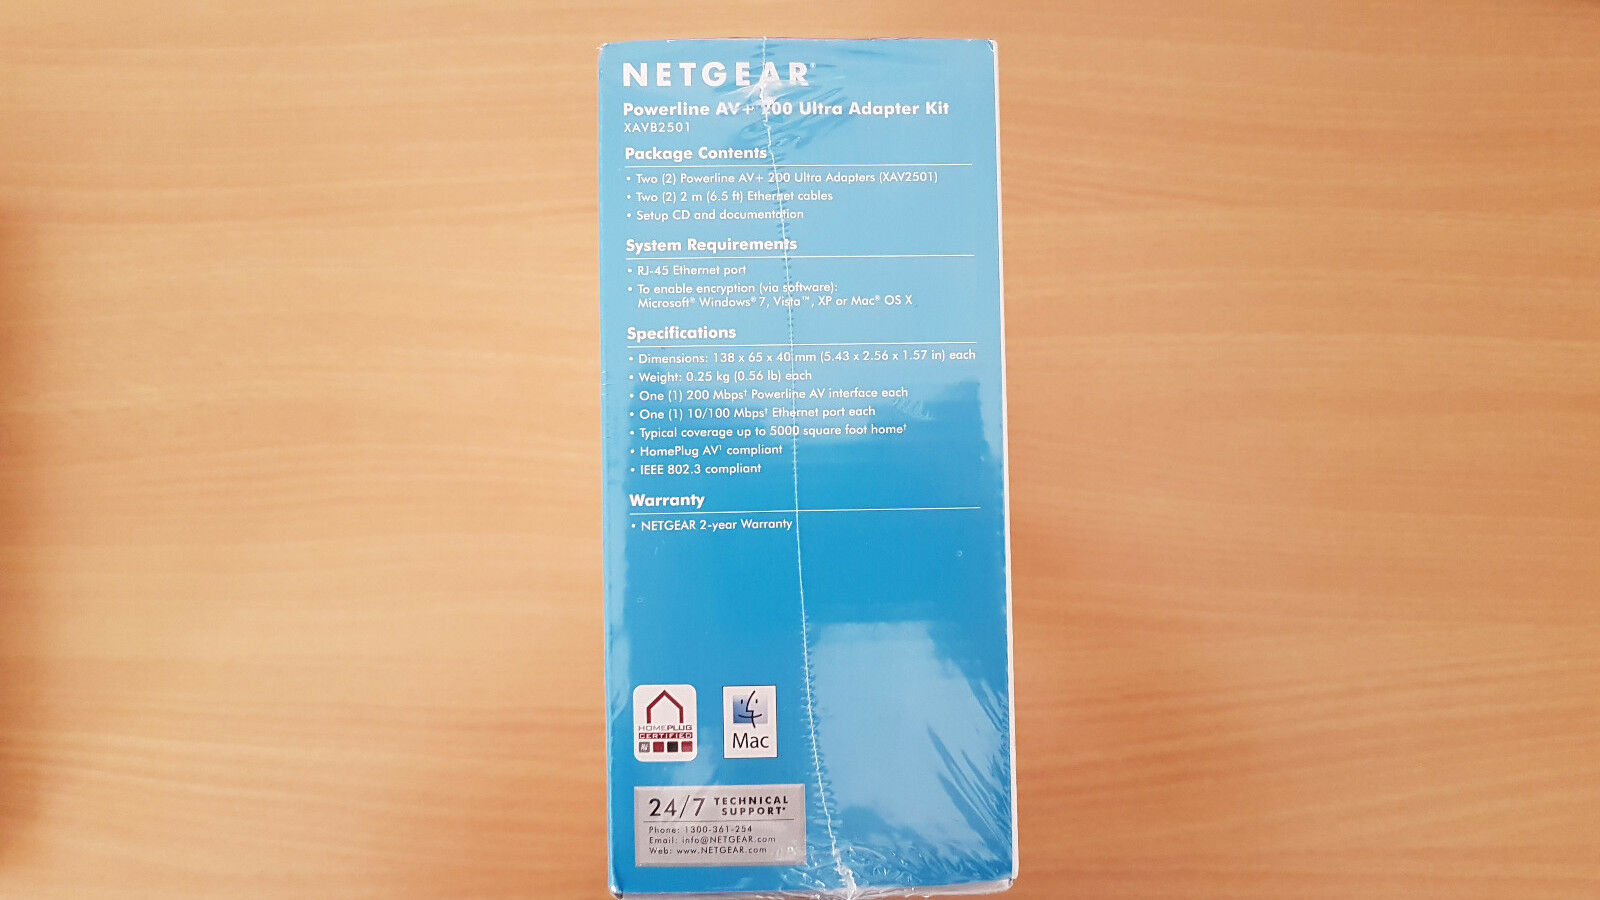 Netgear Powerline AV 200 Ultragear